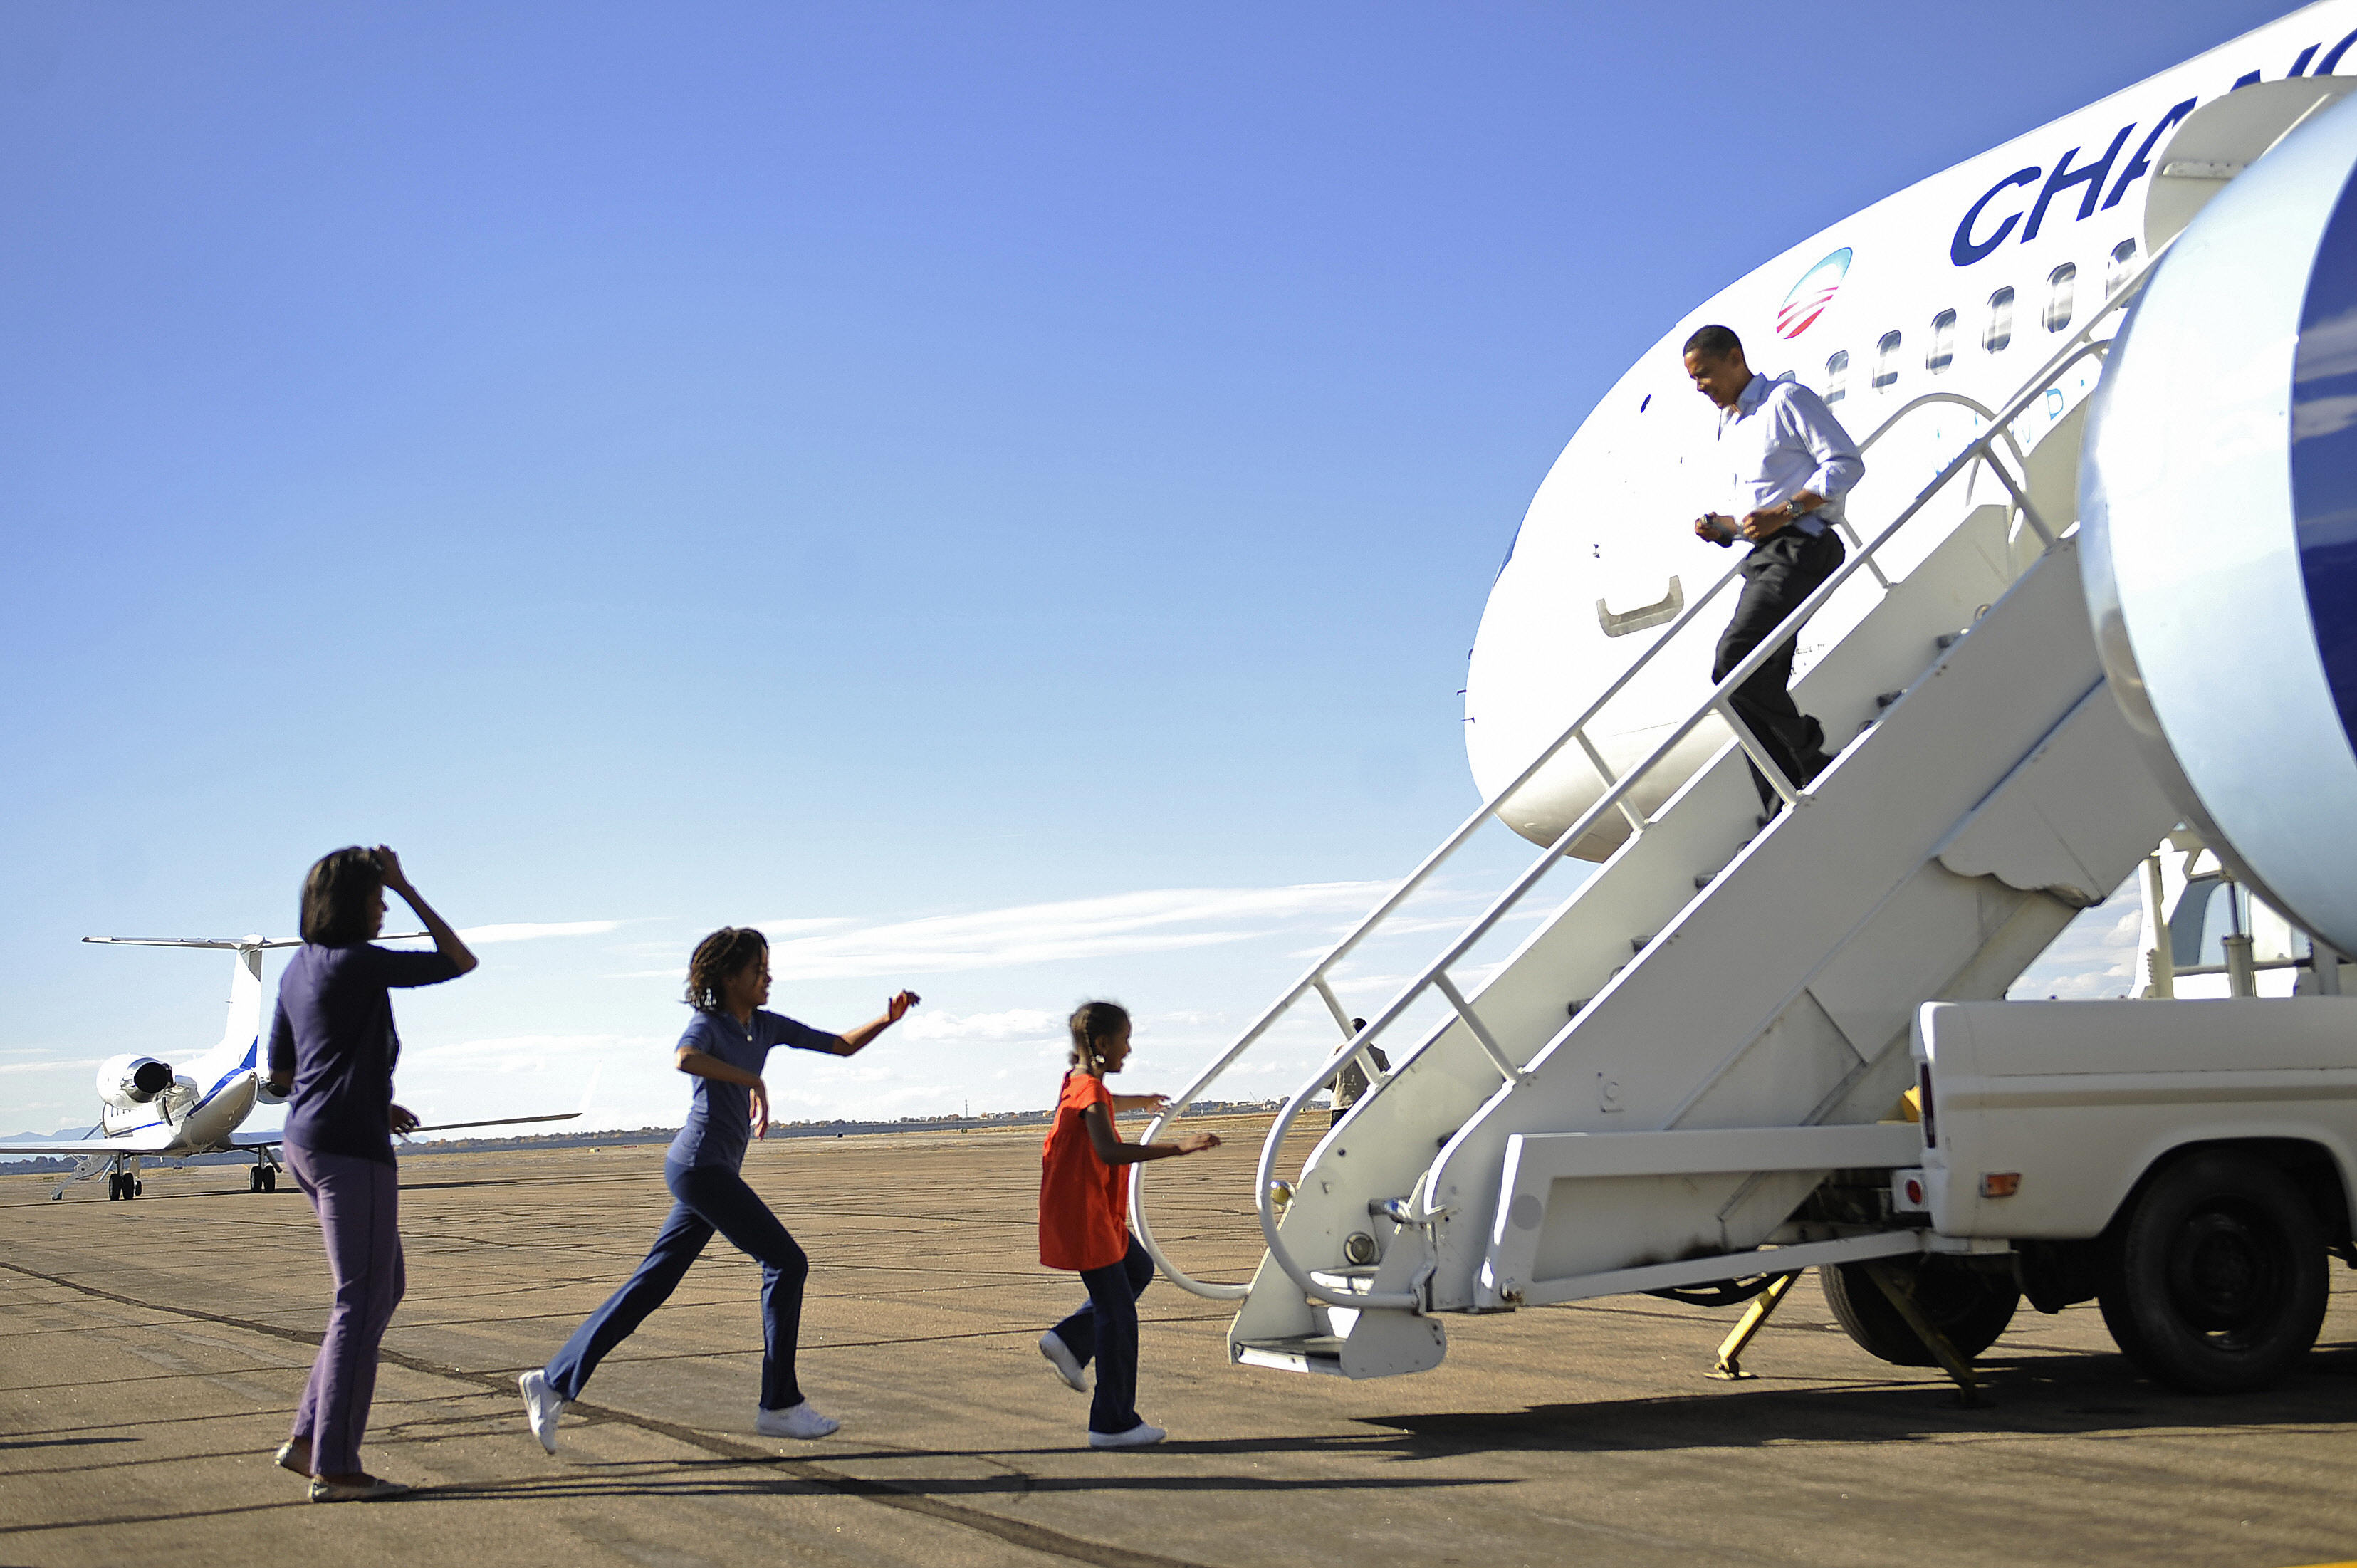 Then-Democratic presidential candidate Senator Barack Obama is welcomed by his wife Michelle and daughters Malia, 11 and Sasha, 7, upon landing in Pueblo, Colorado, on Nov. 01, 2008.